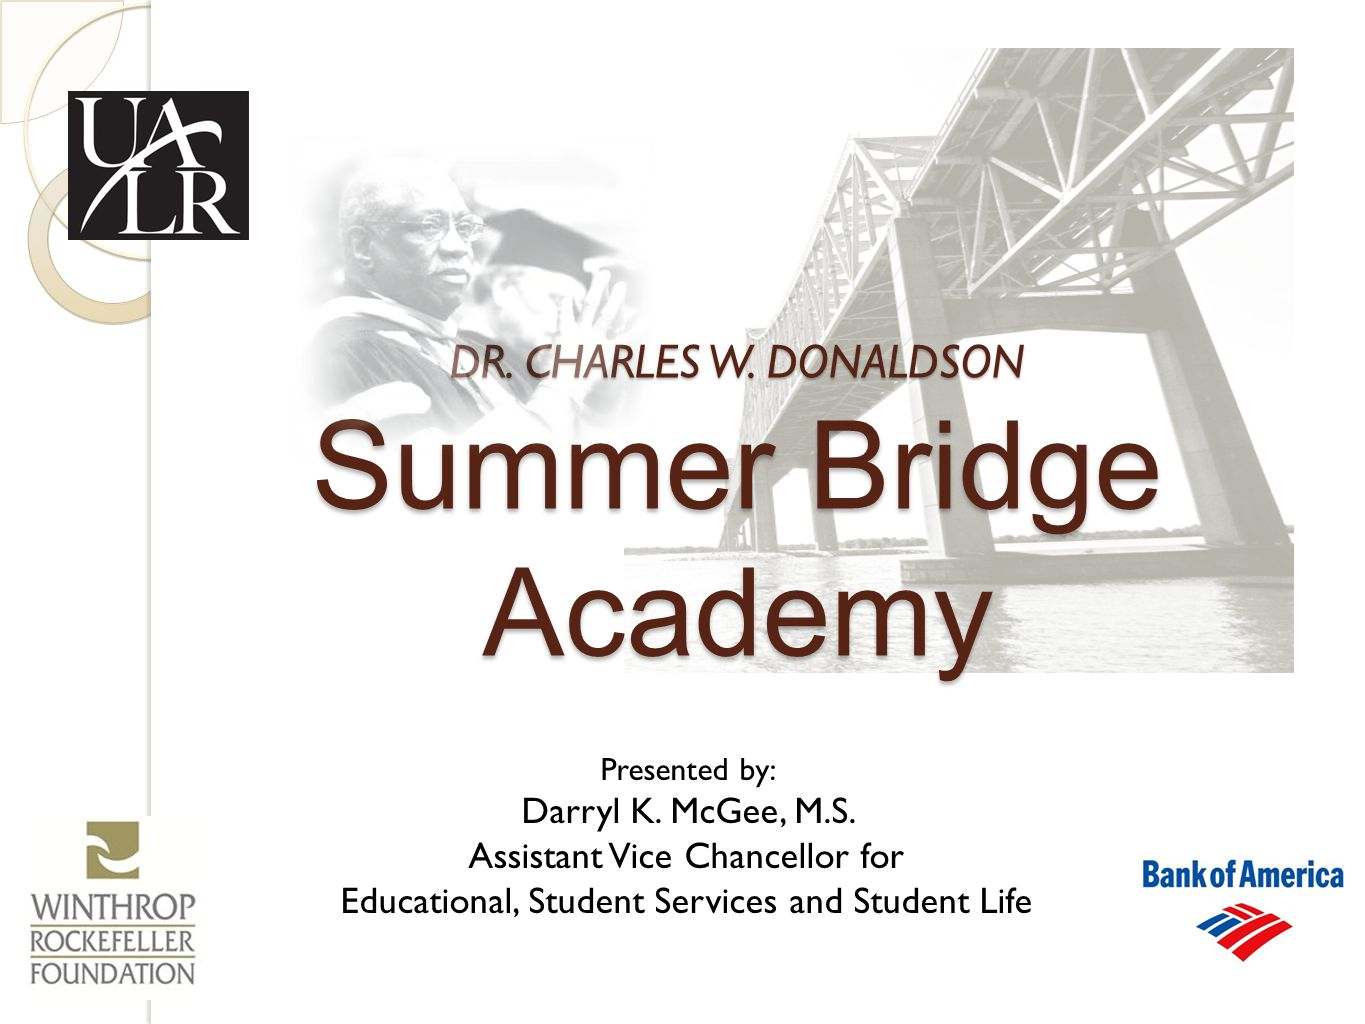 DR. CHARLES W. DONALDSON Summer Bridge Academy Presented by: Darryl K.